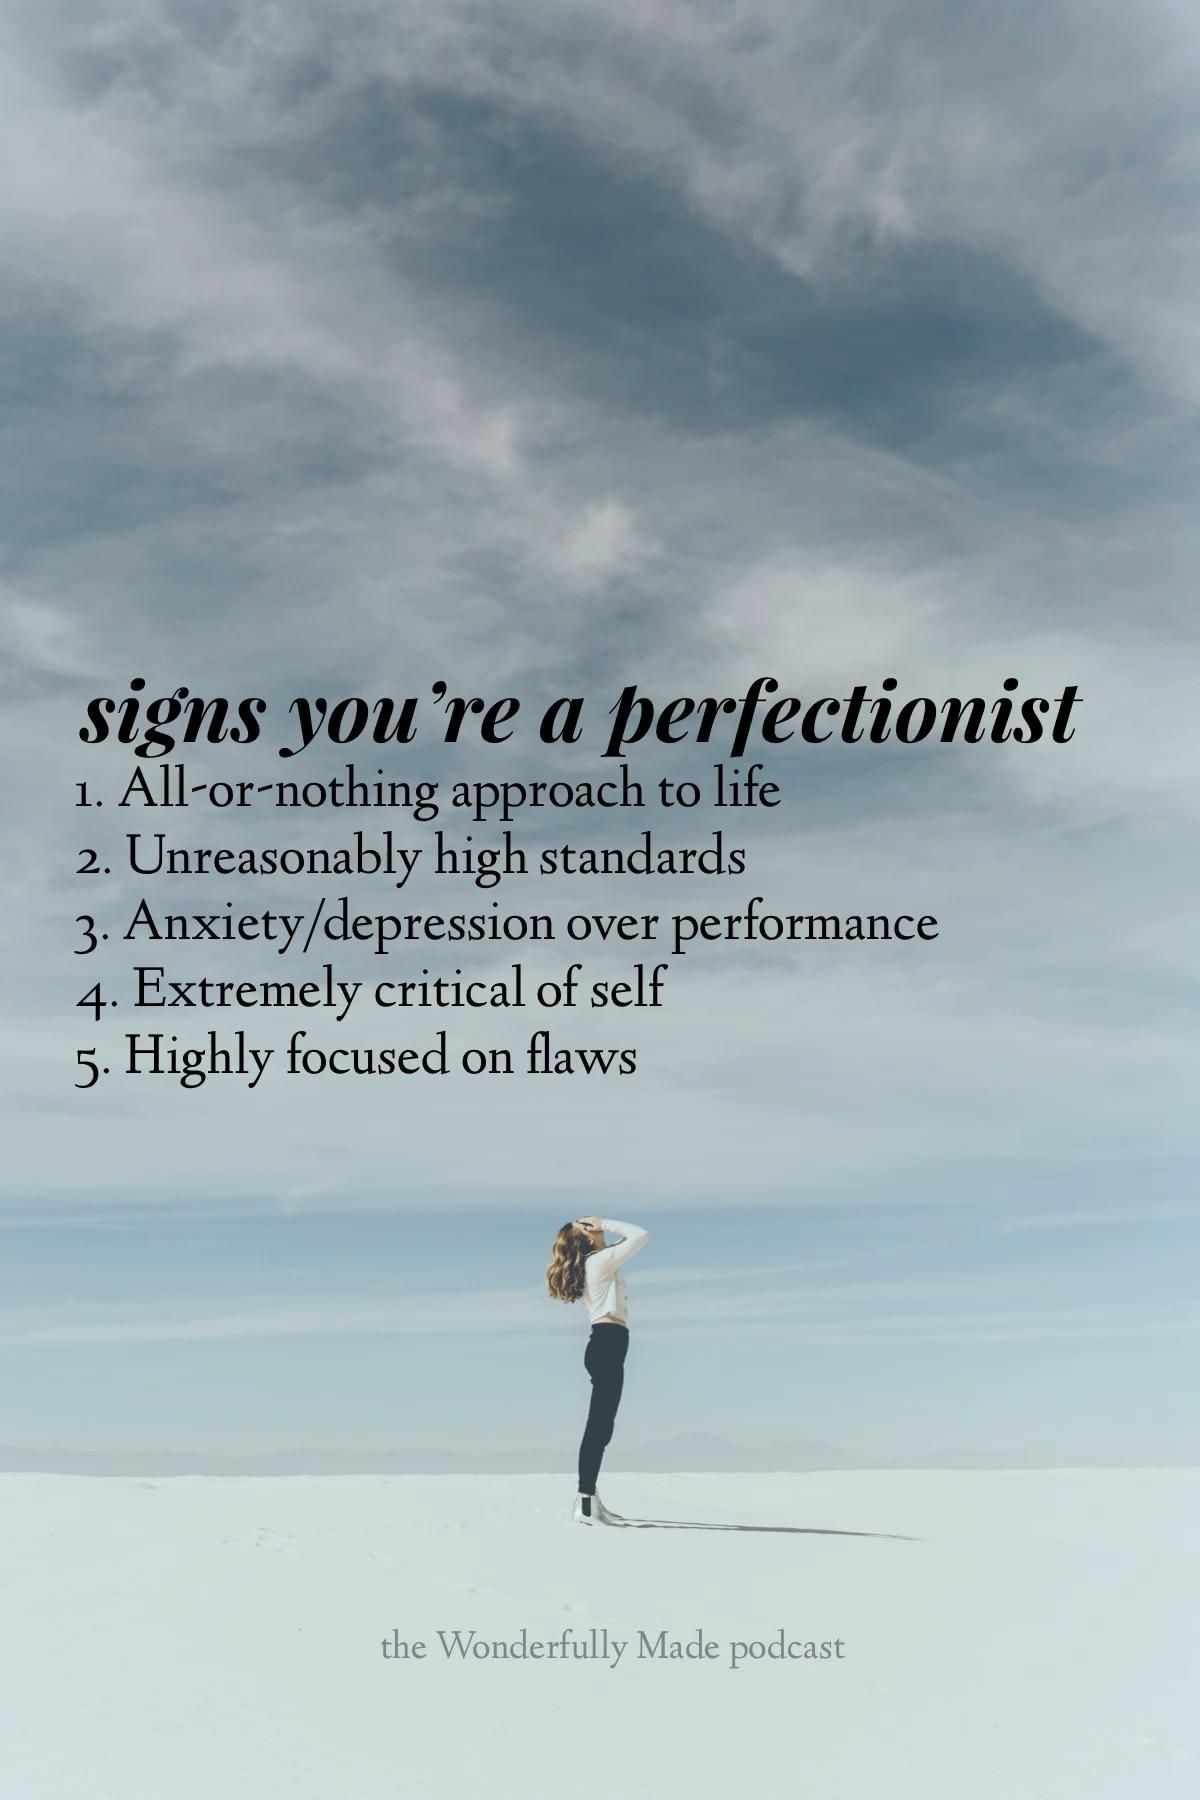 Are you struggling with perfectionism?